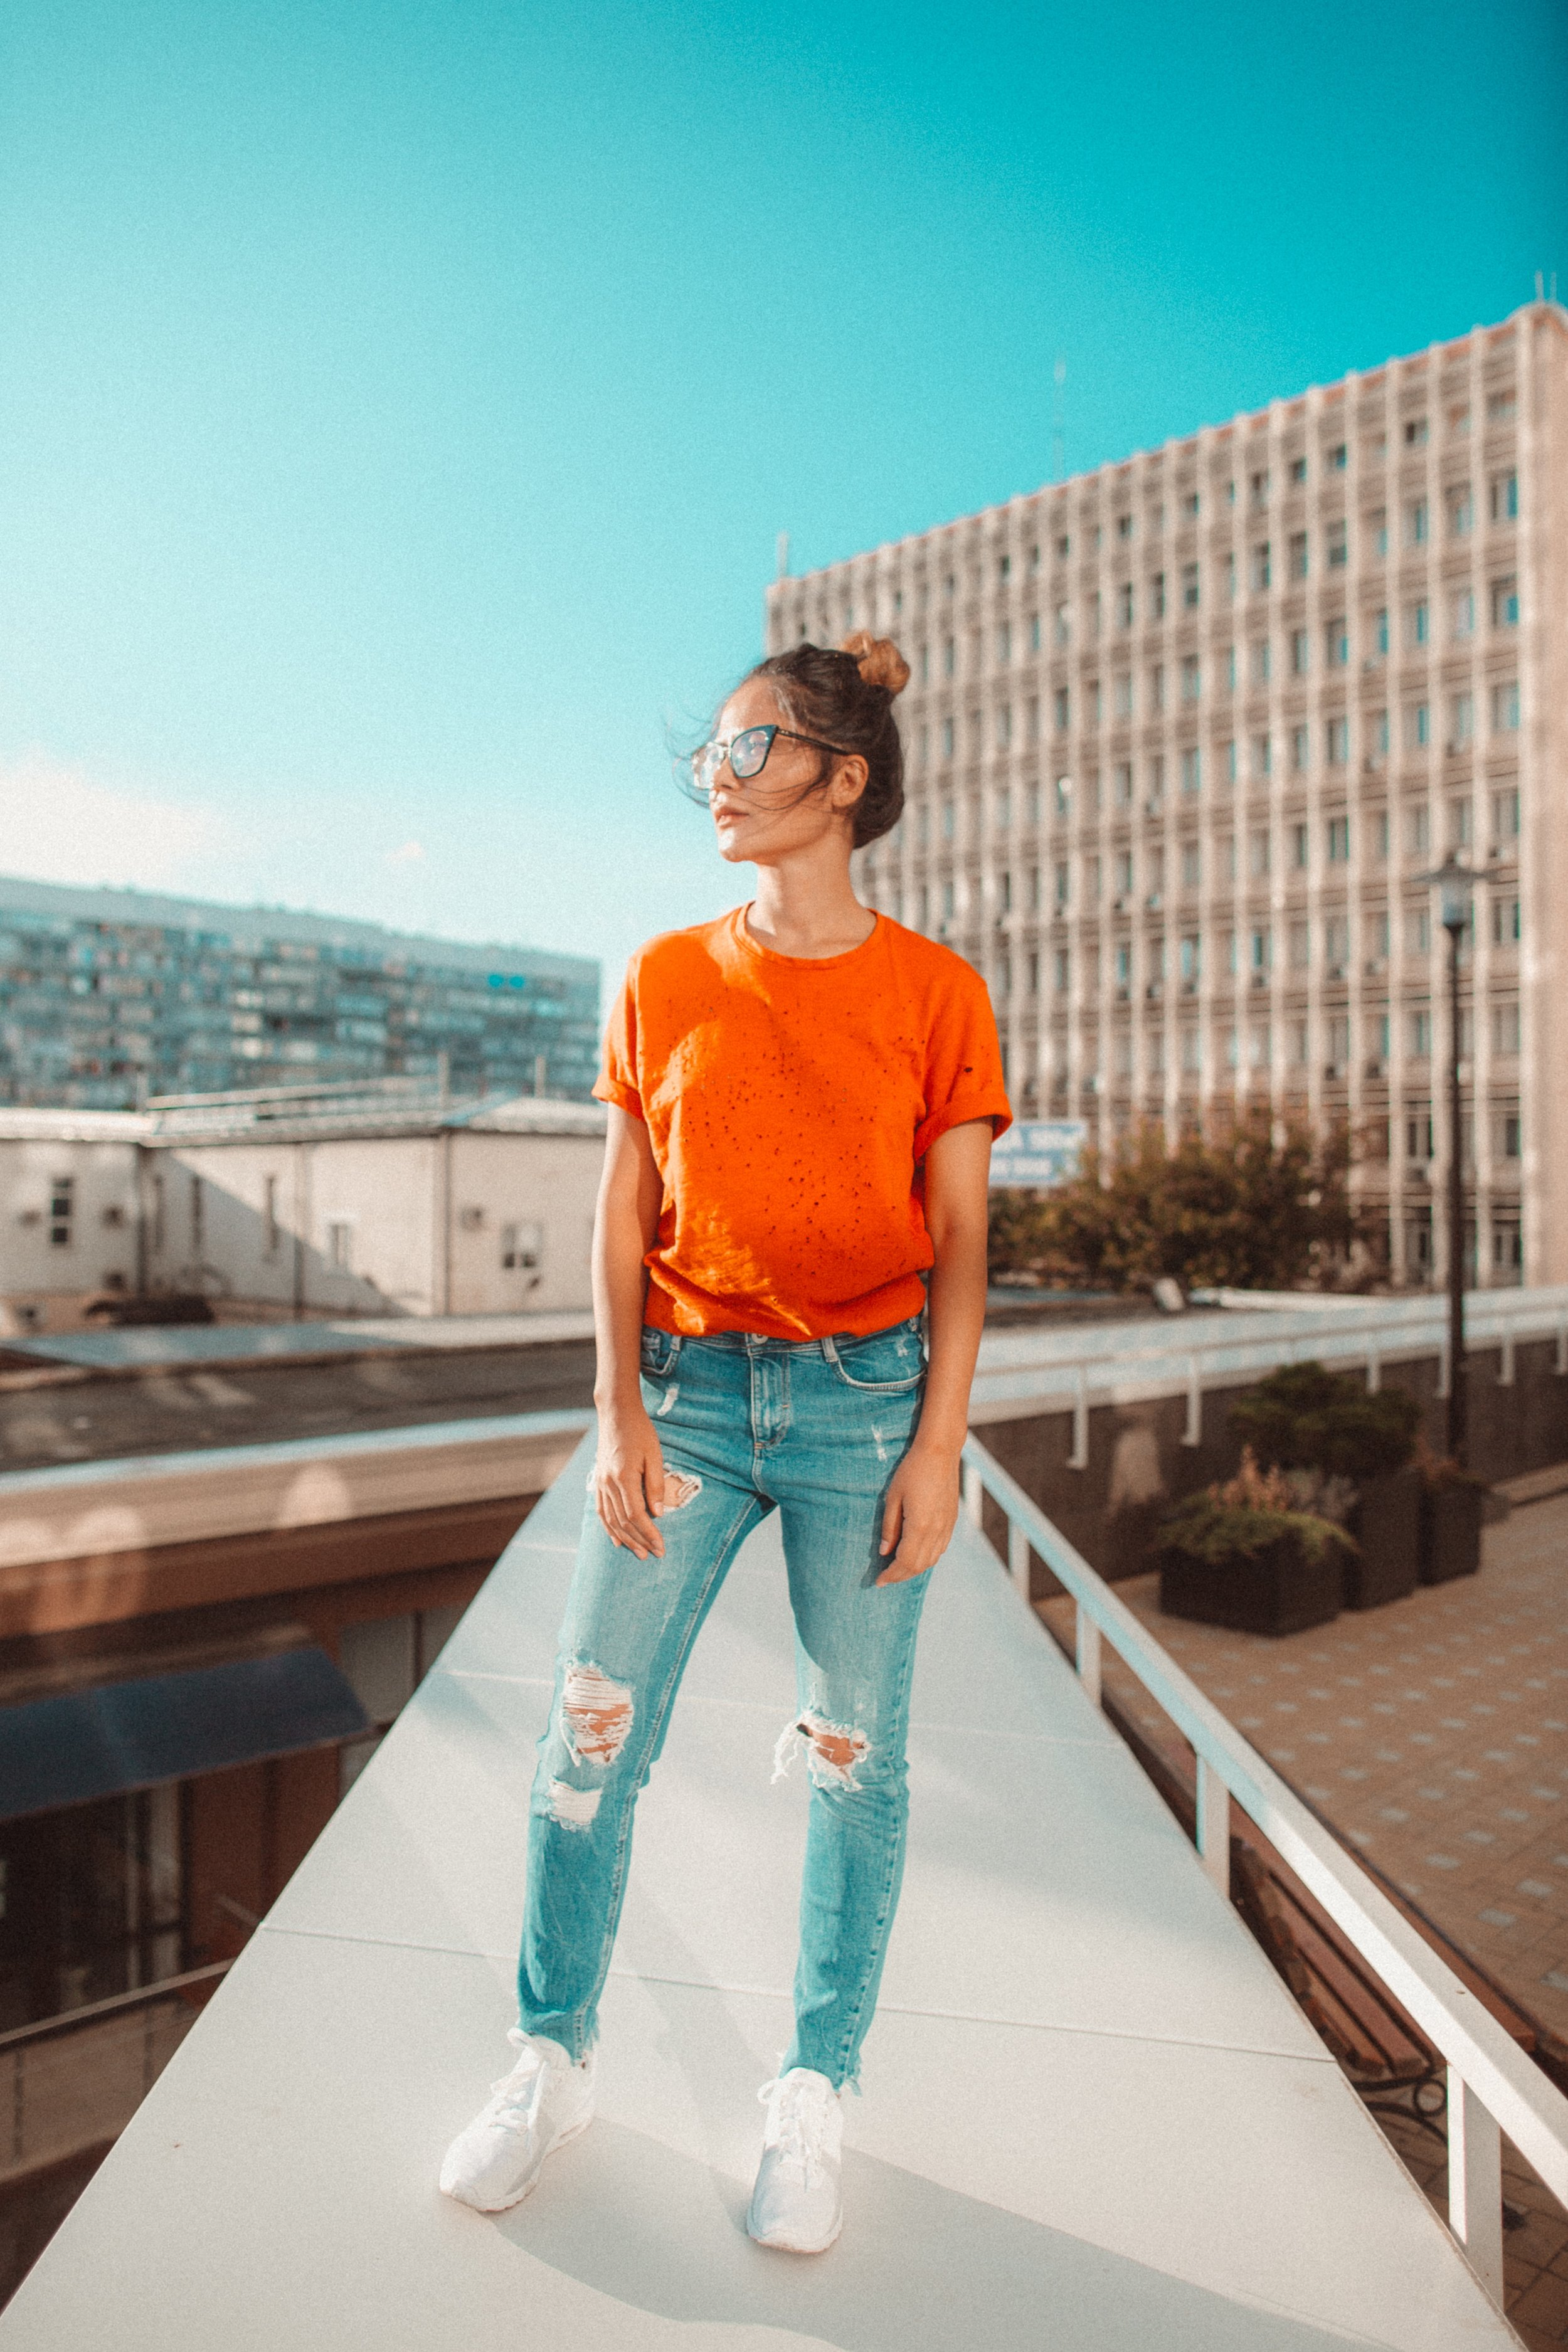 Brands can work with influencers all over the world, or within their own city/country/region, bringing their audiences closer to individuals who have a wide sphere of influence in their niche